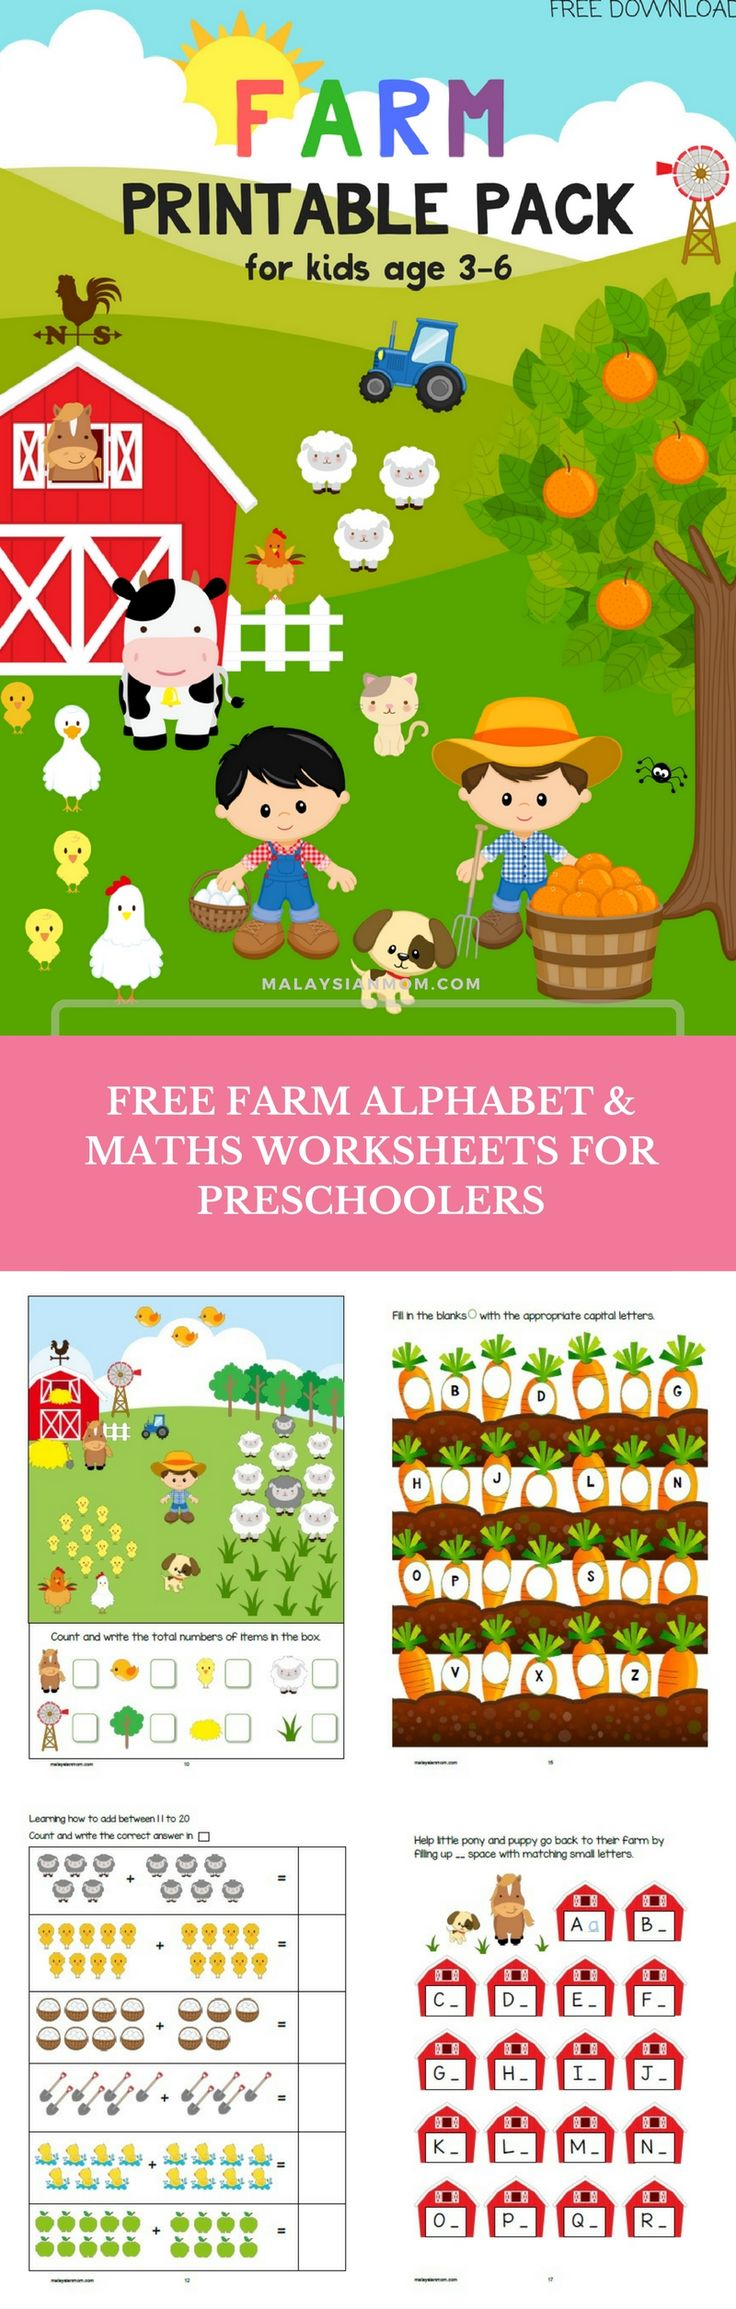 Farm theme printable pack | Free alphabet and maths worksheets for Pre-K, K1 & K2 | More free printables @malaysian_mom